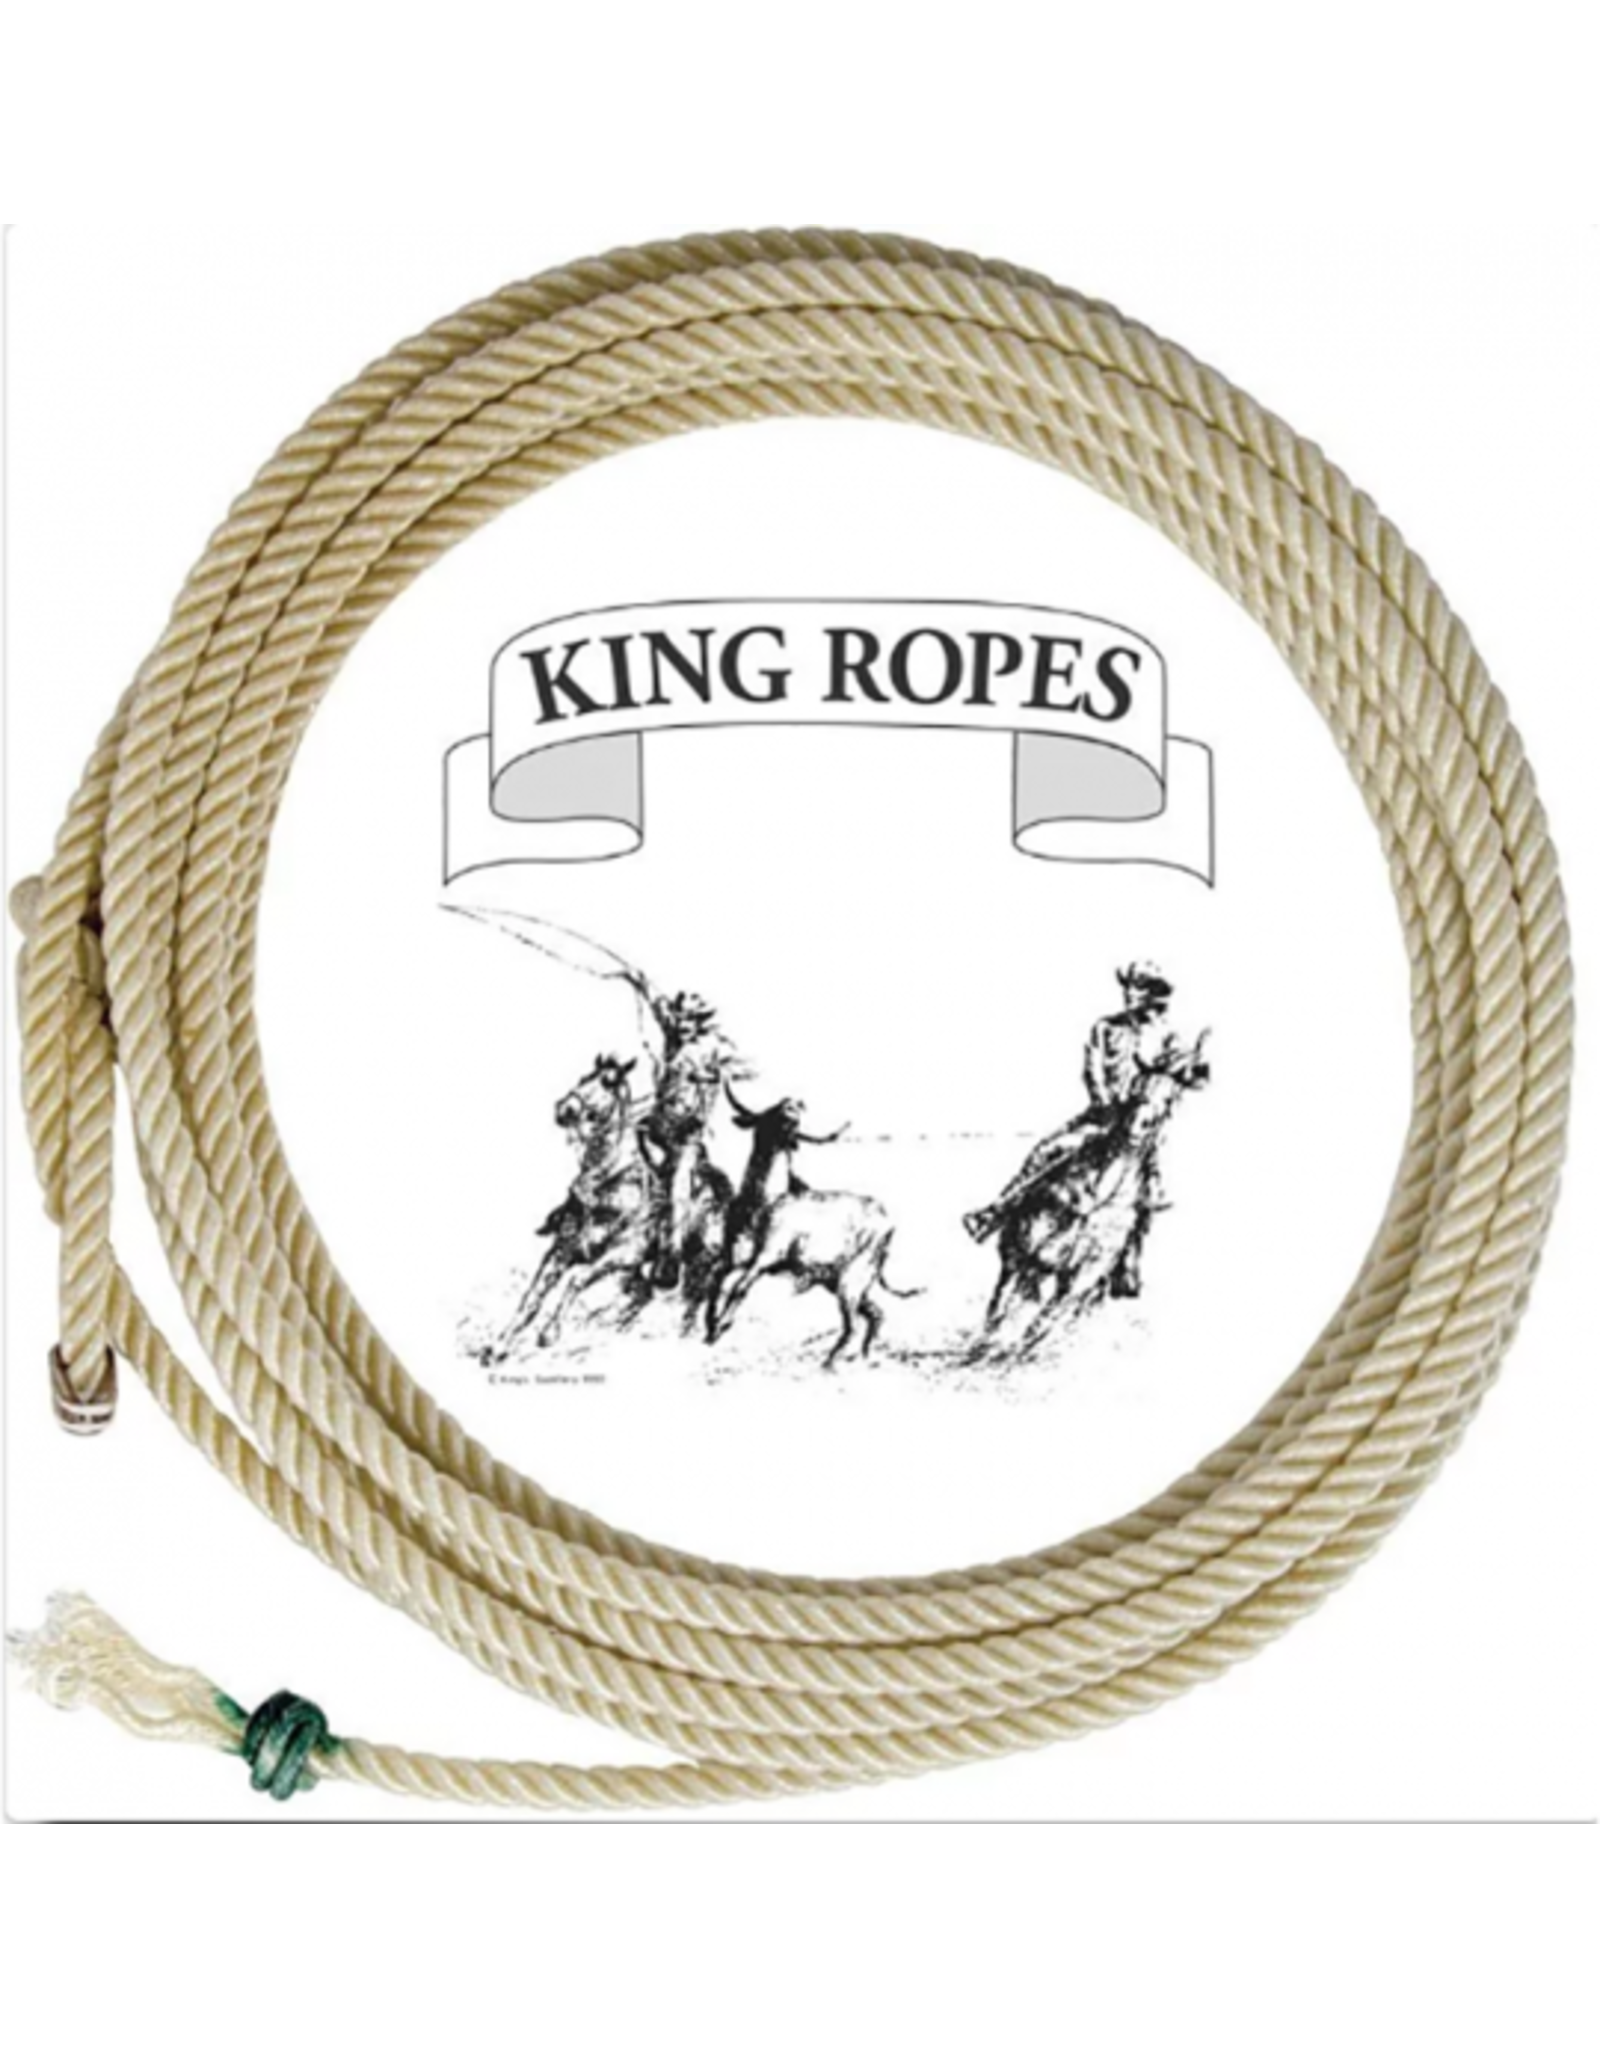 King Ropes P48T28 King Ropes Poly 10.0 White Calf Rope 48THD